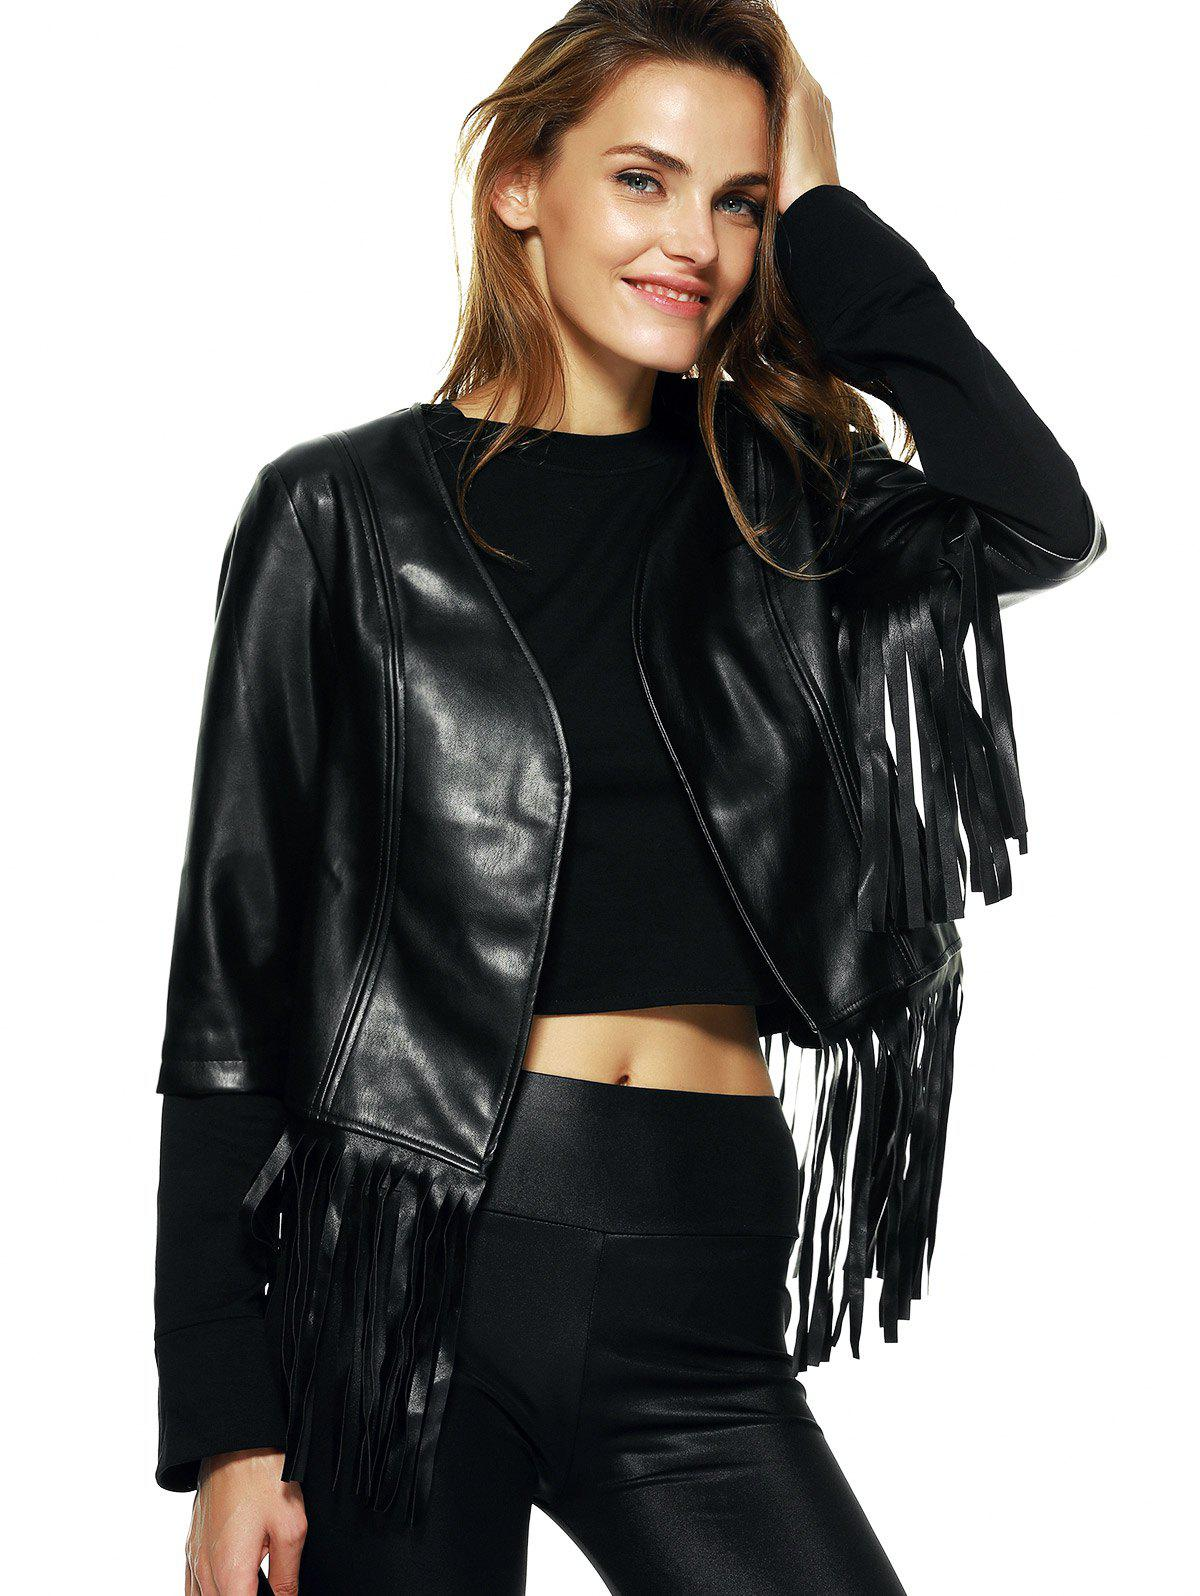 Streetwear Half Sleeve Fringe Black Faux Leather Jacket - BLACK 2XL